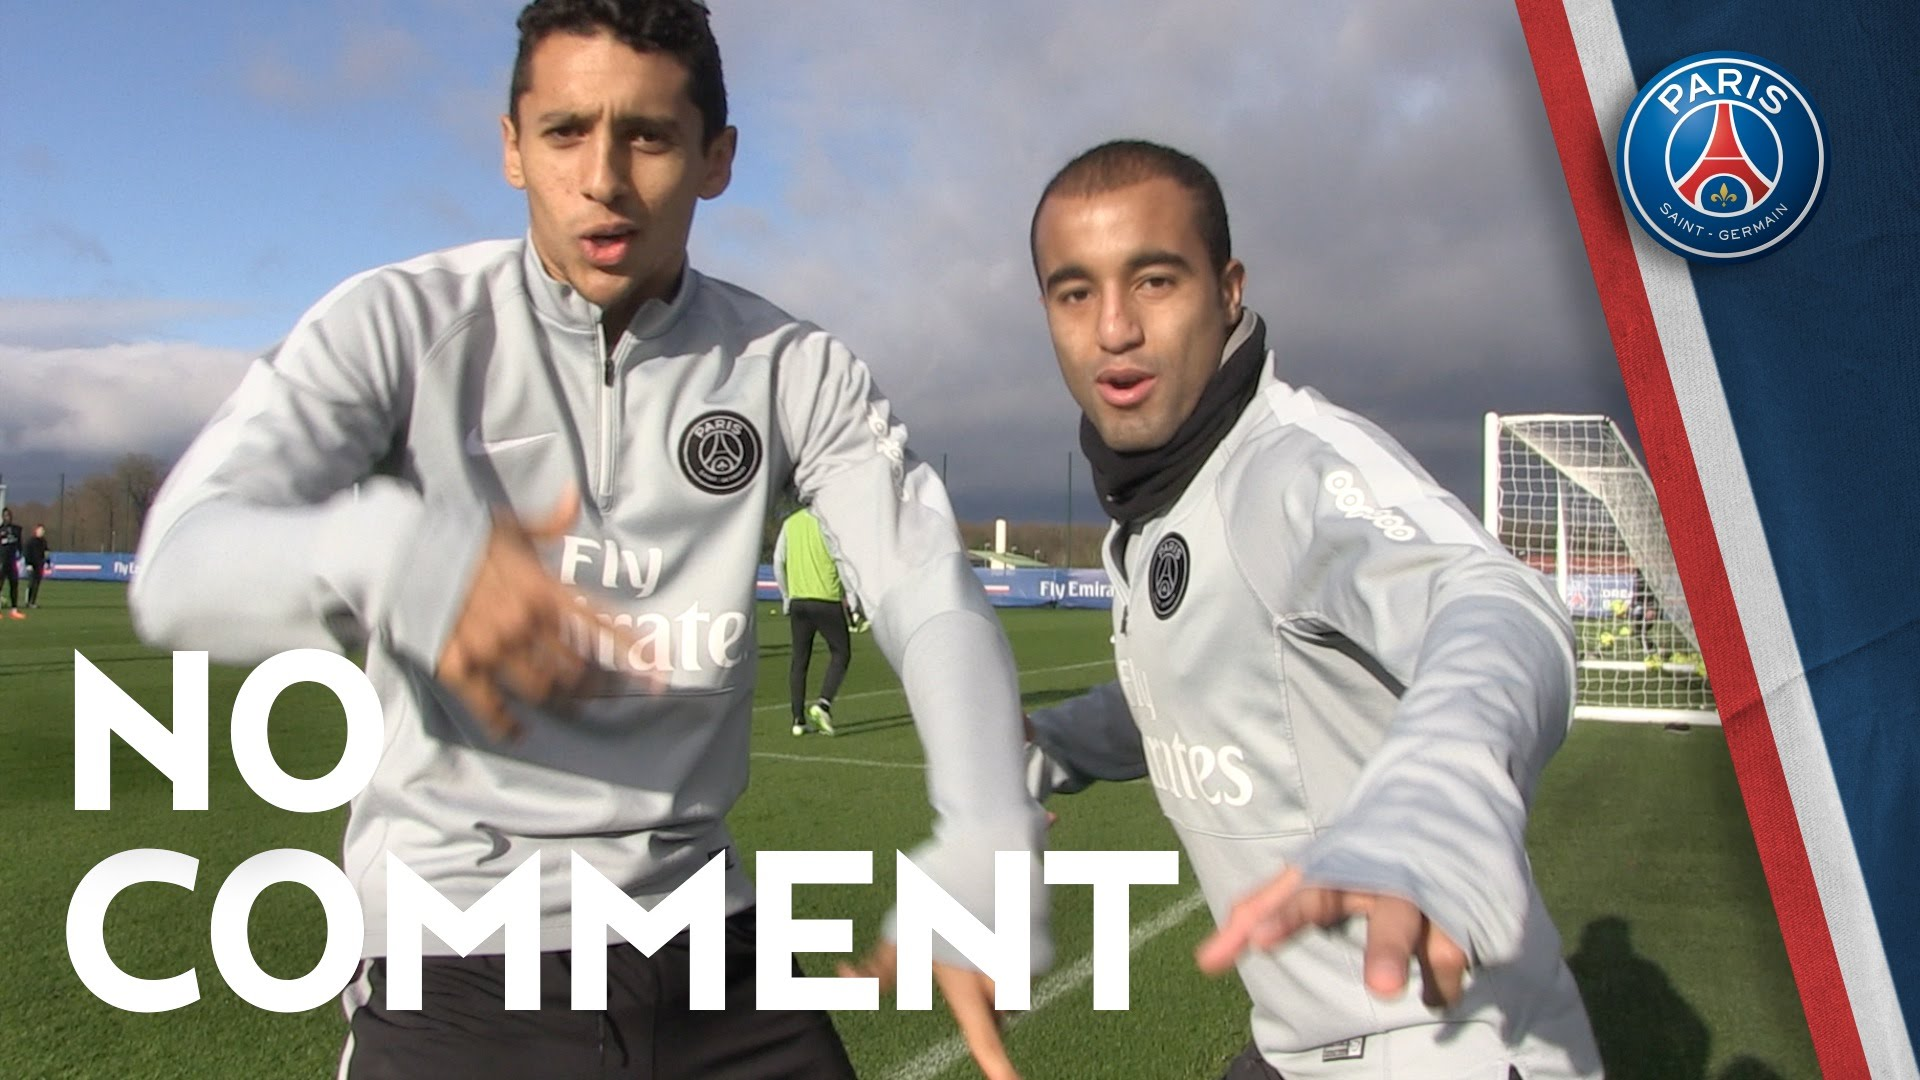 NO COMMENT - Lucas Marquinhos Verratti